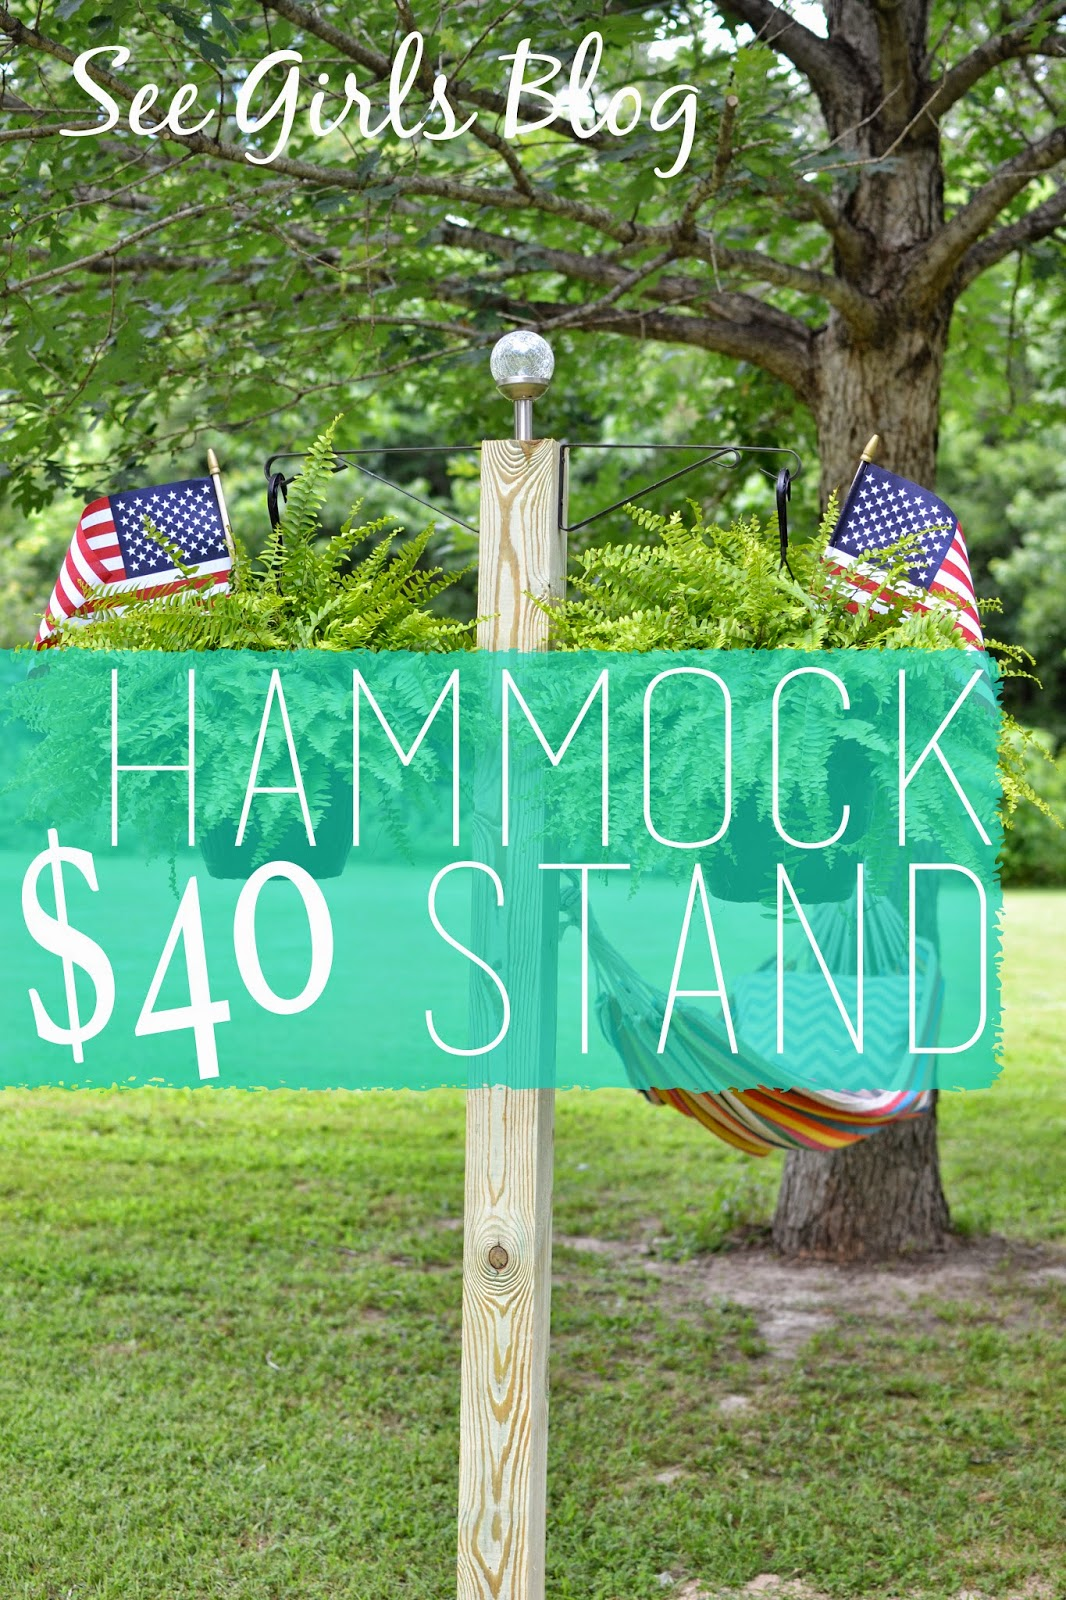 See Girls Blog Hammocking Is All The Rage